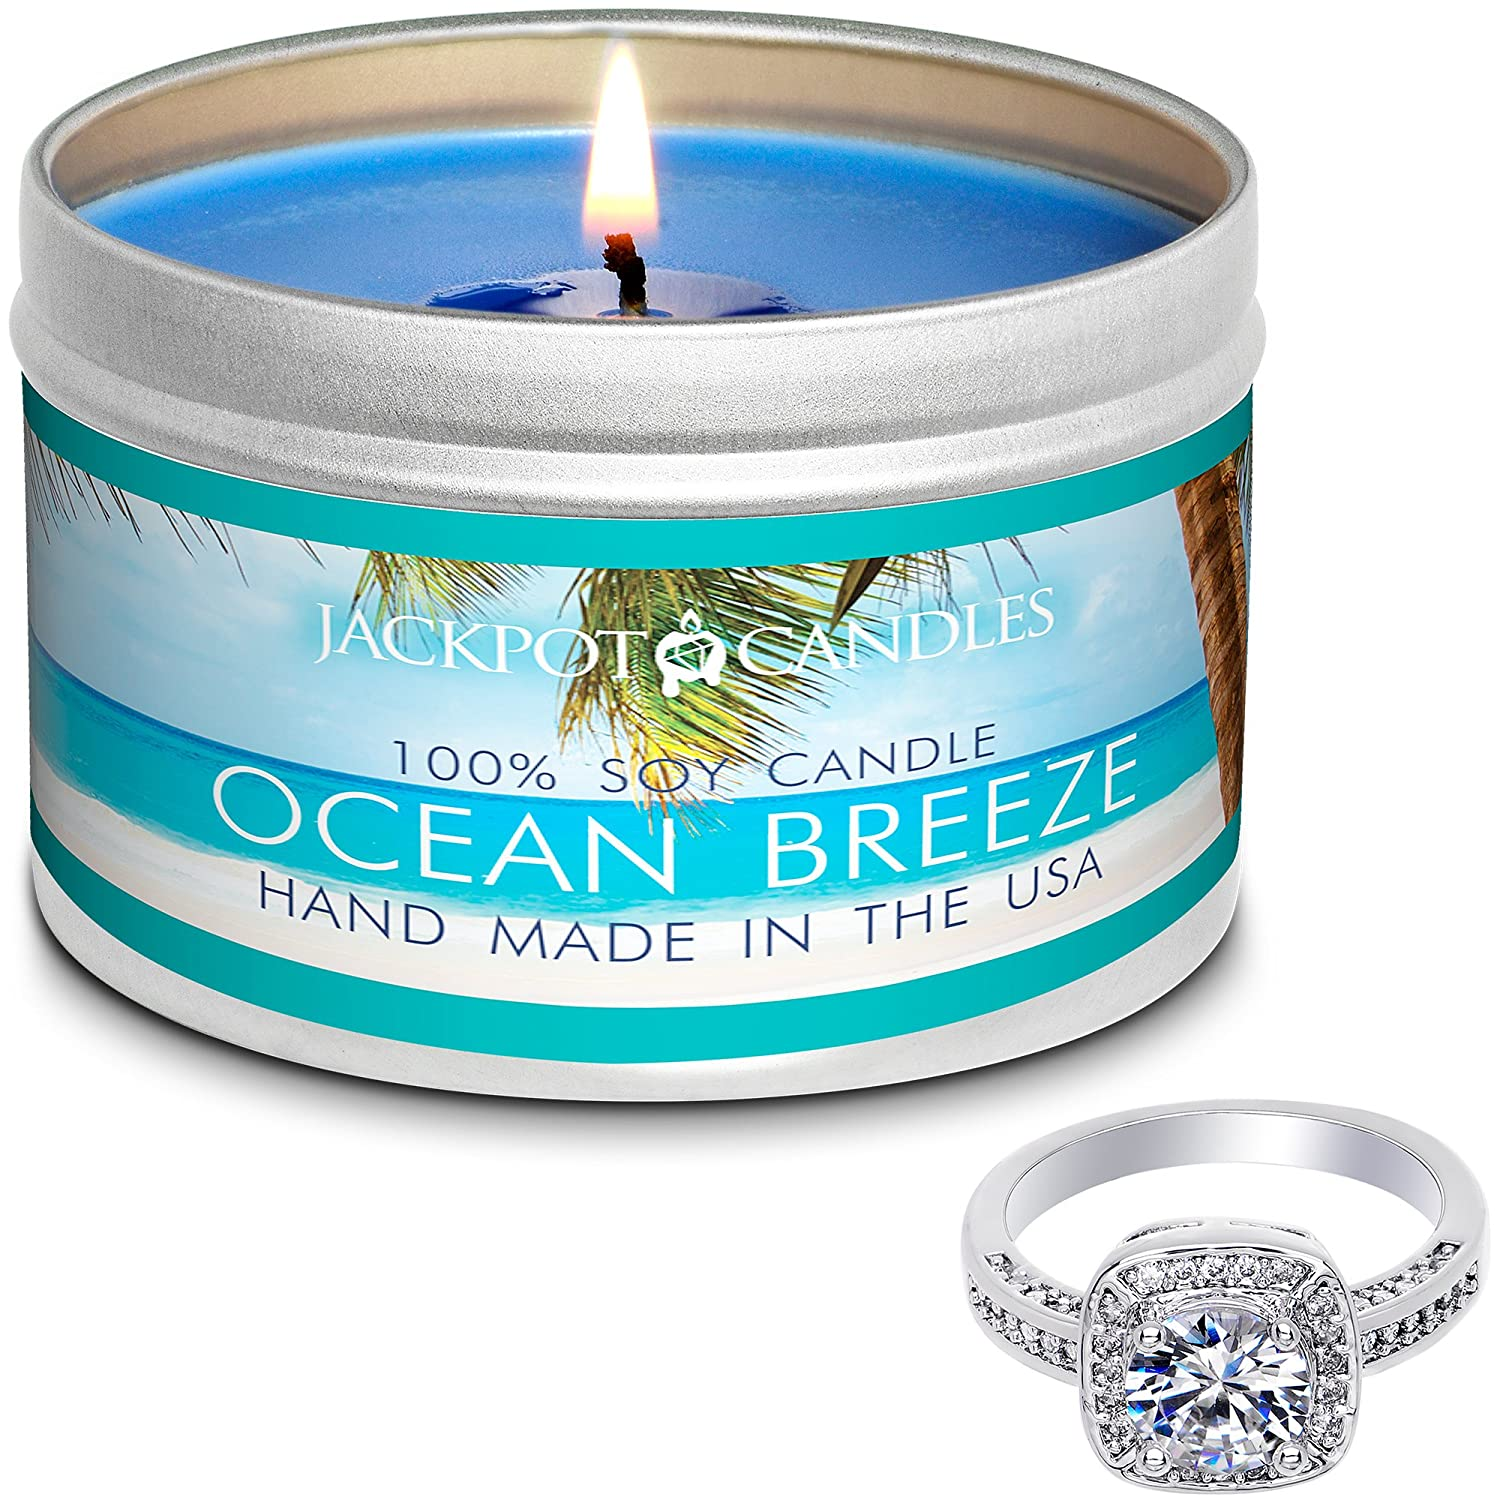 Jackpot Candles Surprise Size Ring Ocean Breeze Jewelry Candle Travel Tin TIN-155-RNG-SURPRISE